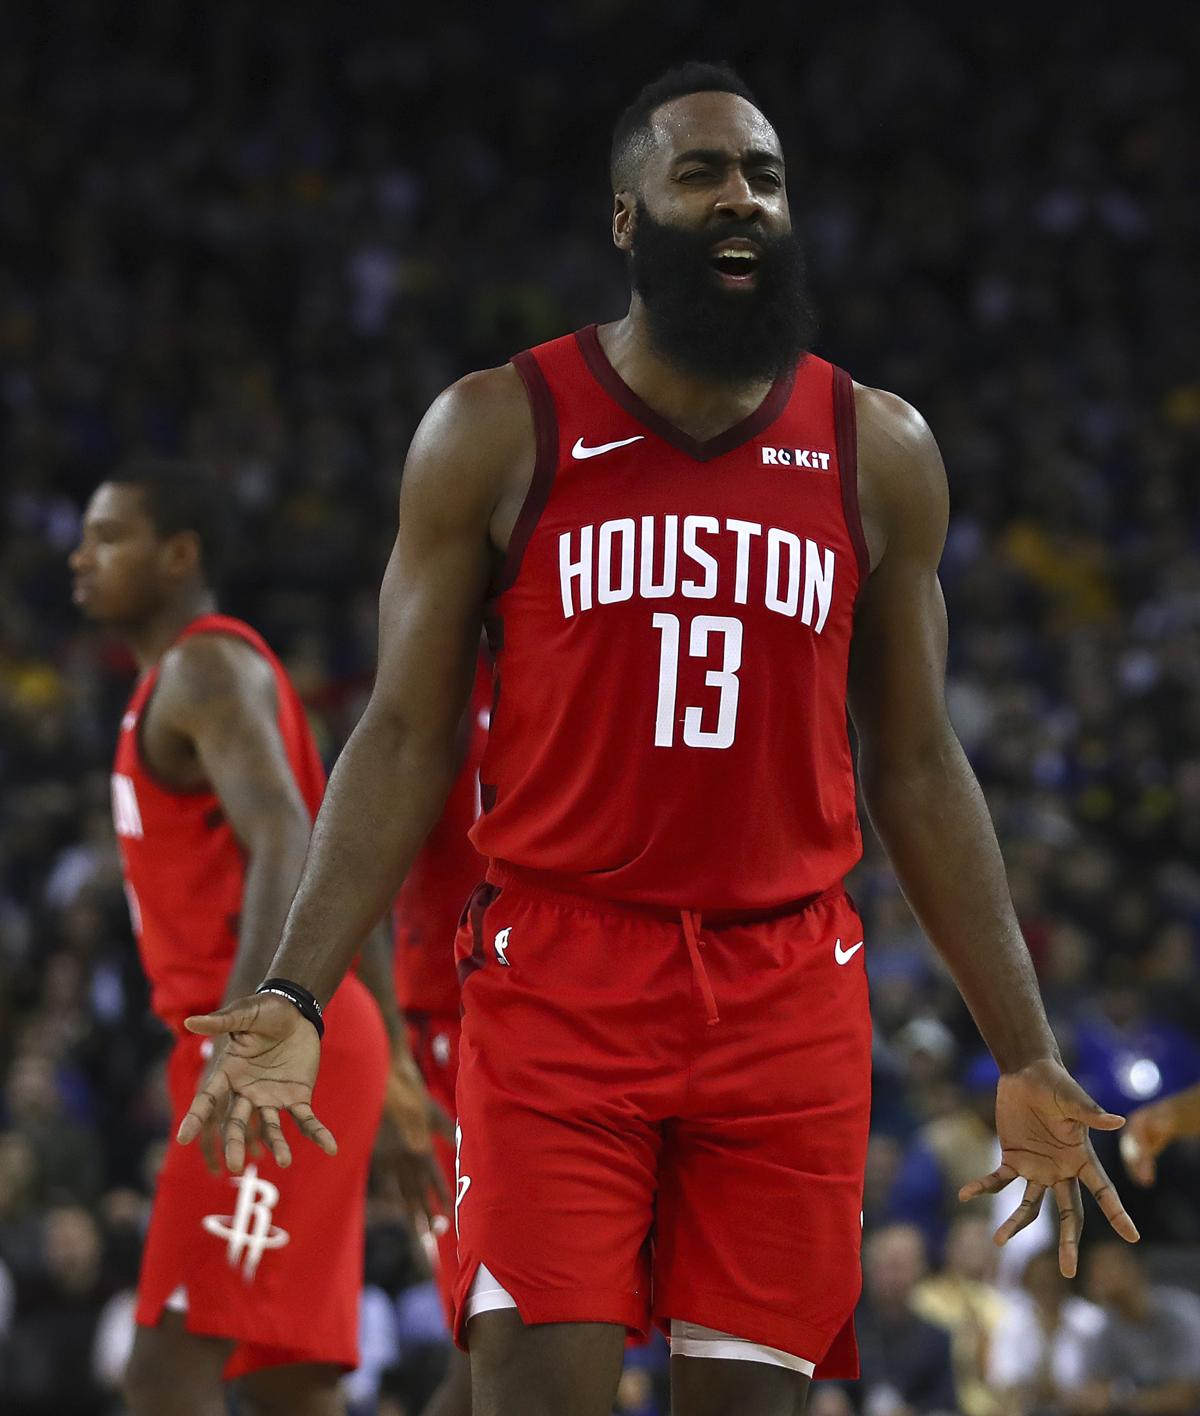 Houston Rockets  James Harden reacts during the second half of the team s  NBA basketball game b70677aa9